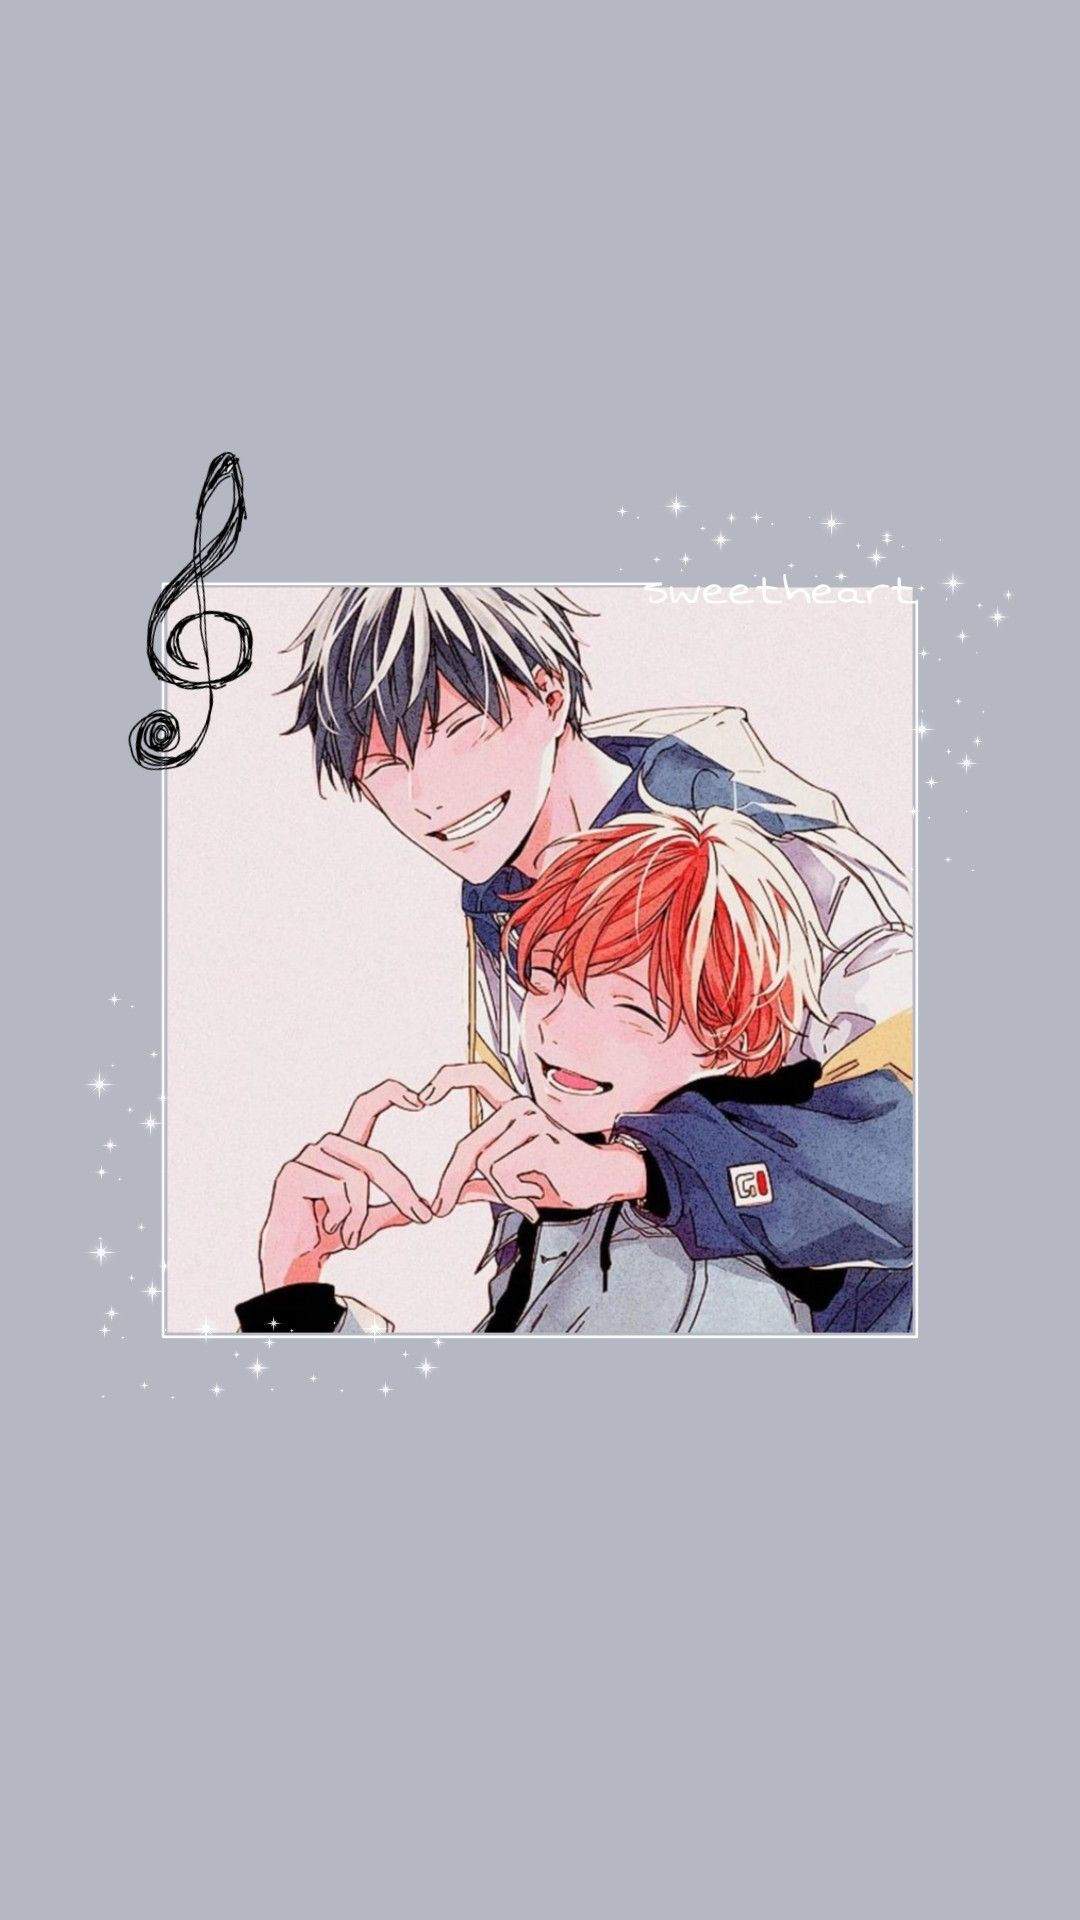 Given Mafuyu And Uenoyama Cute Anime Wallpaper Anime Wallpaper Phone Anime Wallpaper